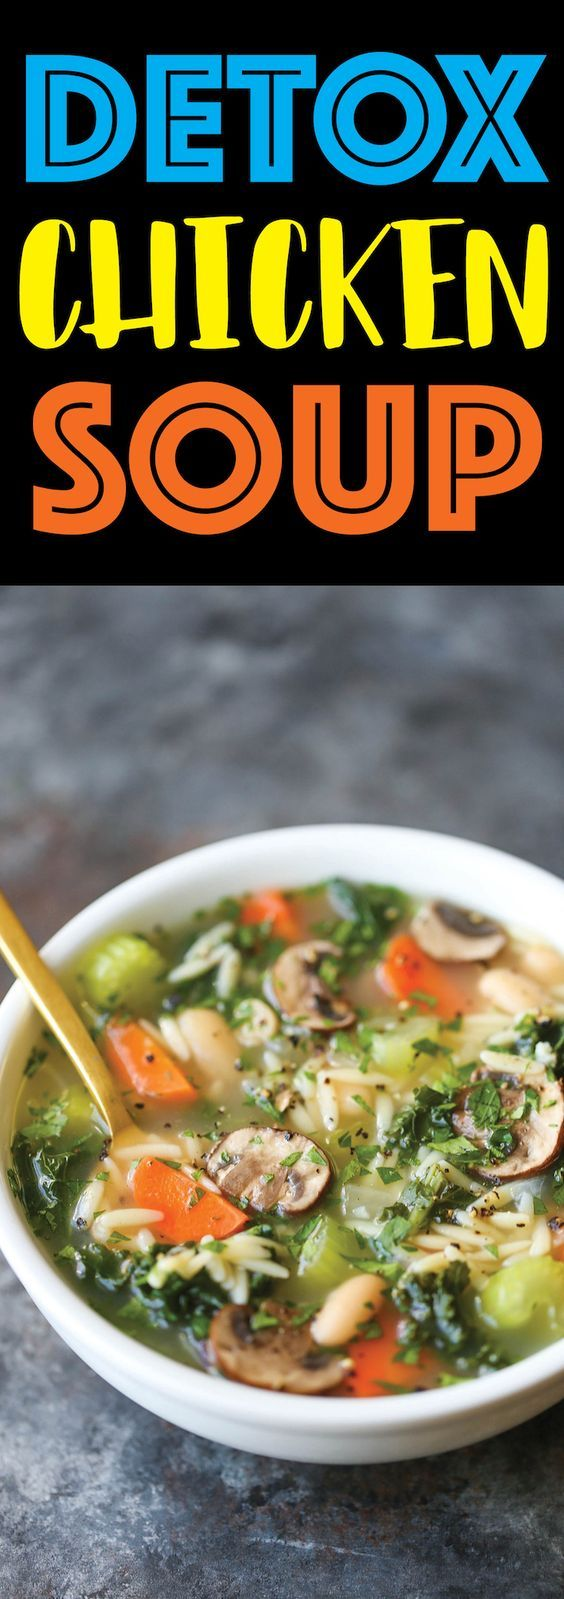 Detox Chicken Soup - Cleansing, immune-boosting soup packed with all the good stuff (kale, mushrooms, celery, carrots, etc.) without compromising any taste!